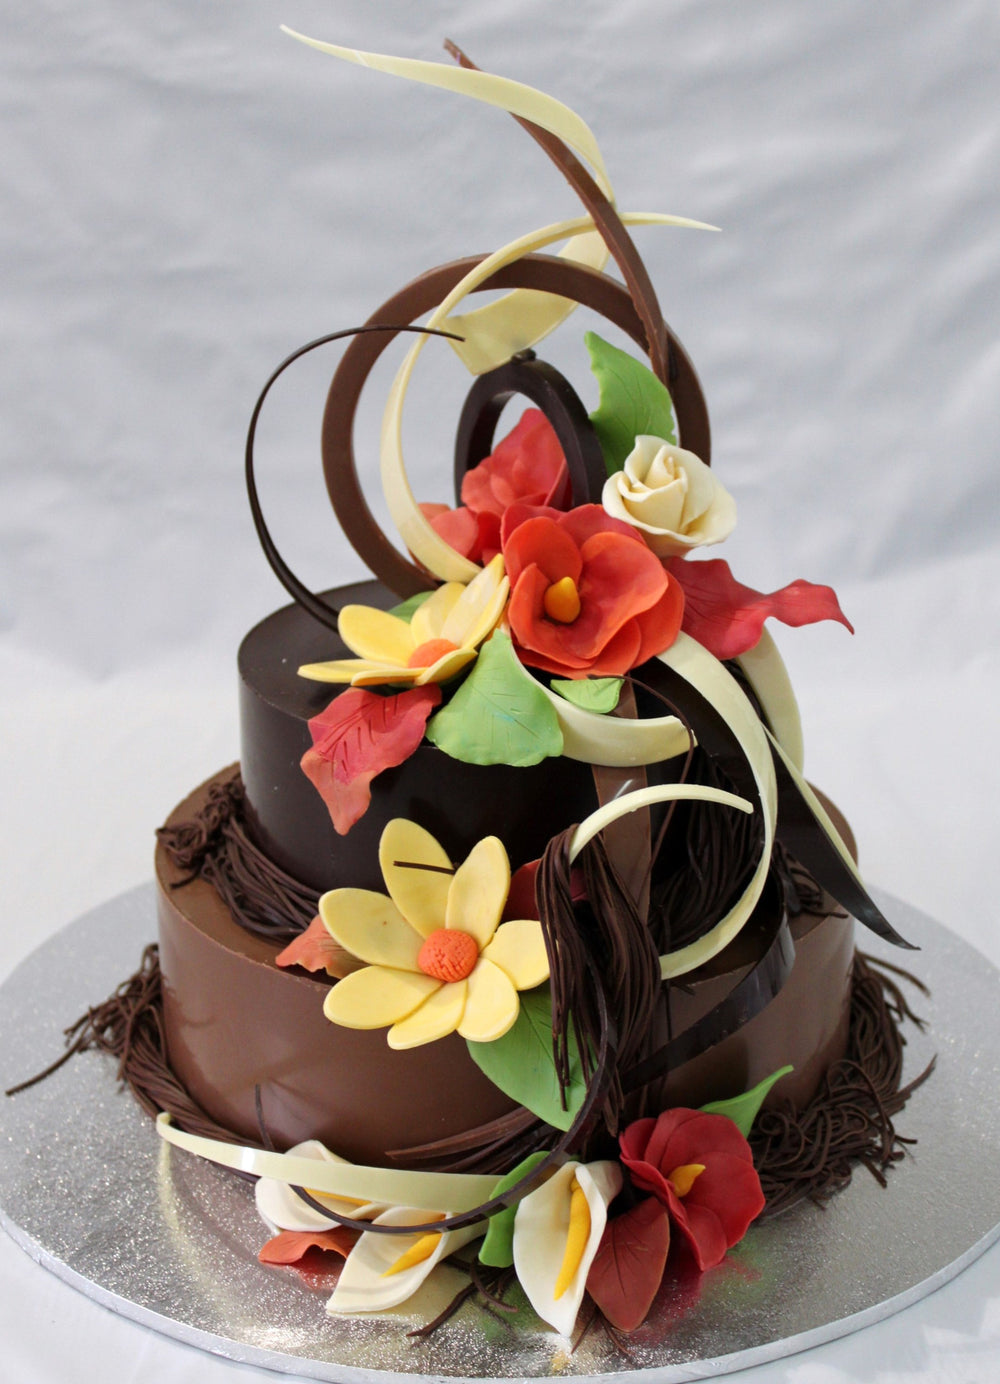 Chocolate Smash Cake - Bright Floral